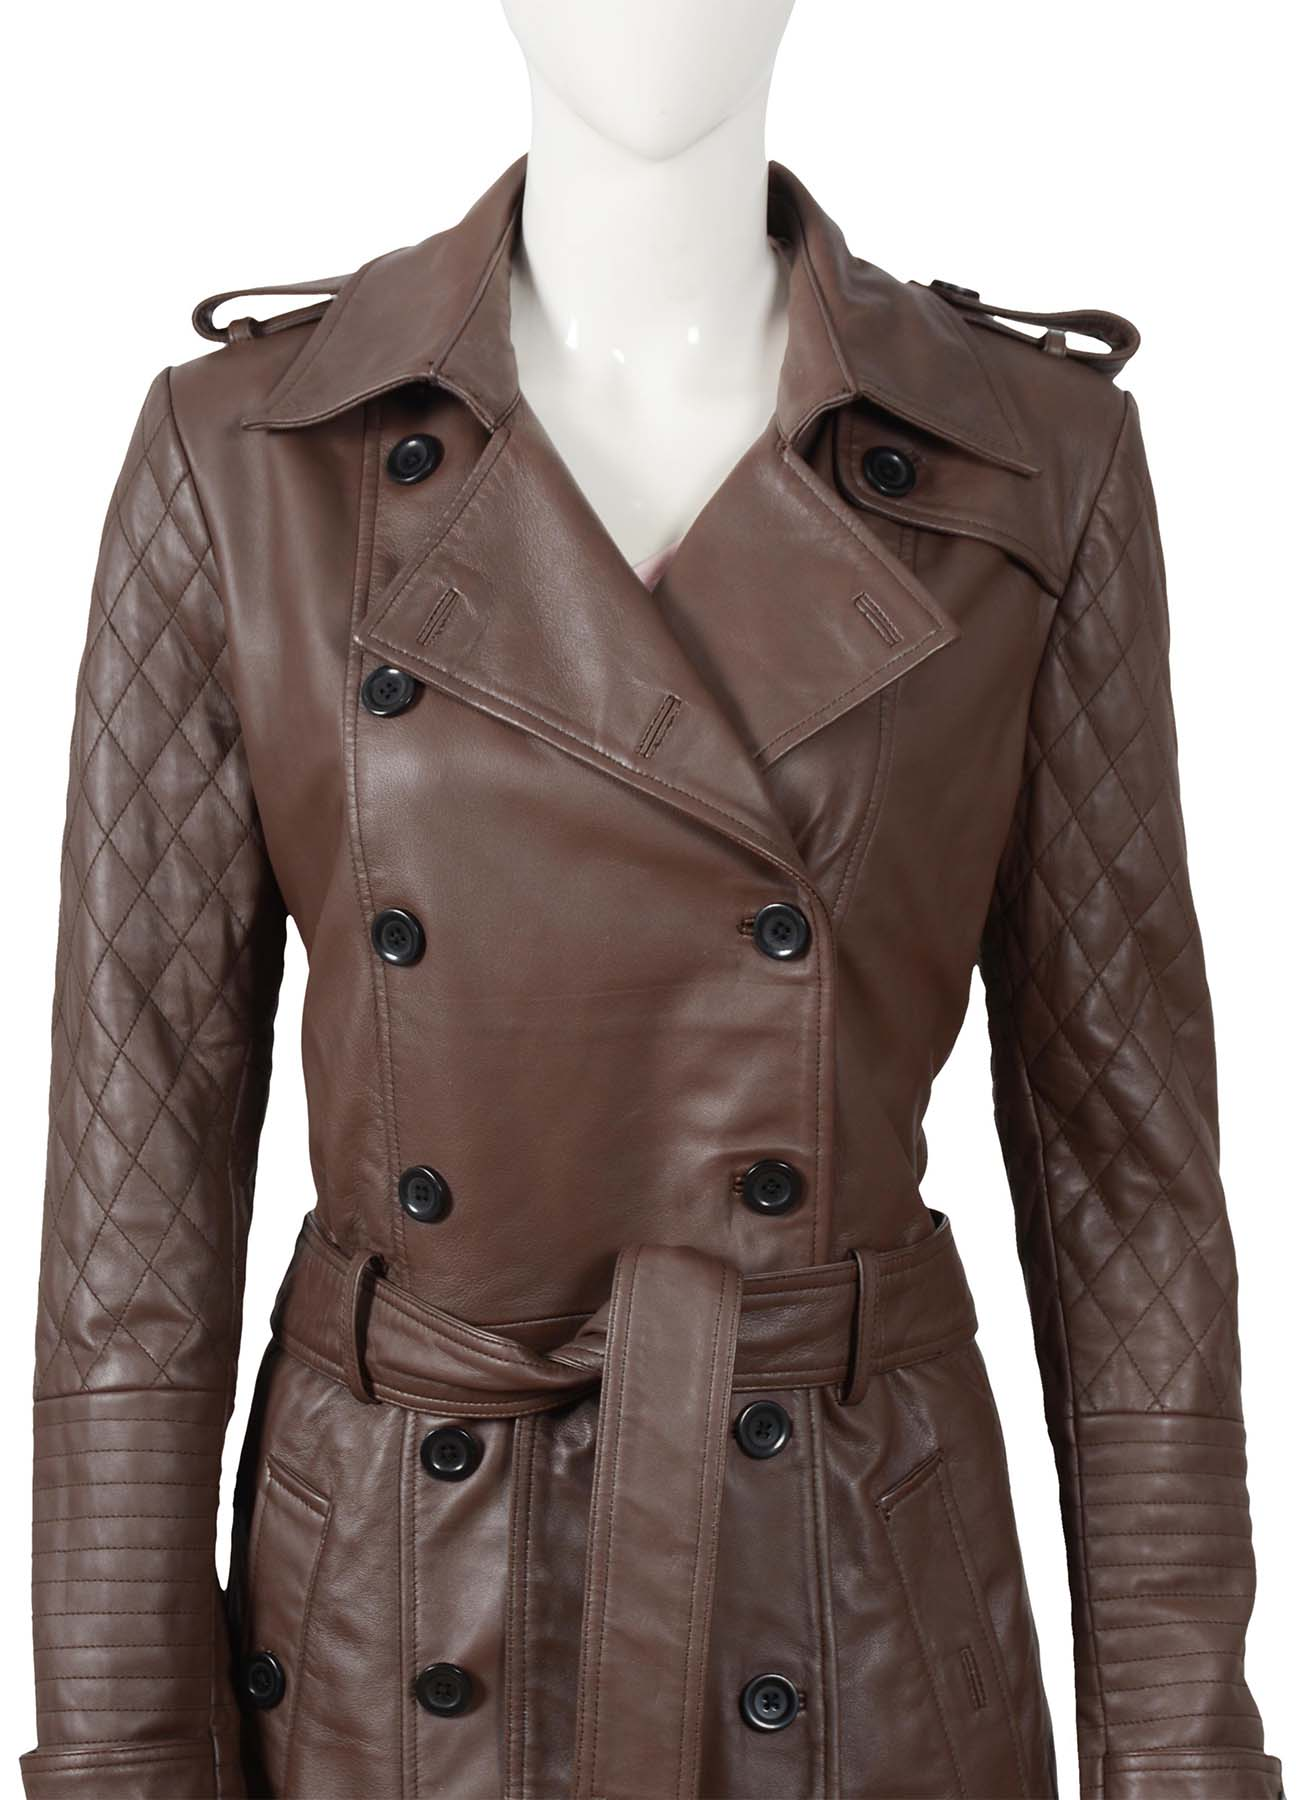 Castle Kate Beckett Chocolate Brown Quilted Leather Trench Coat for Women